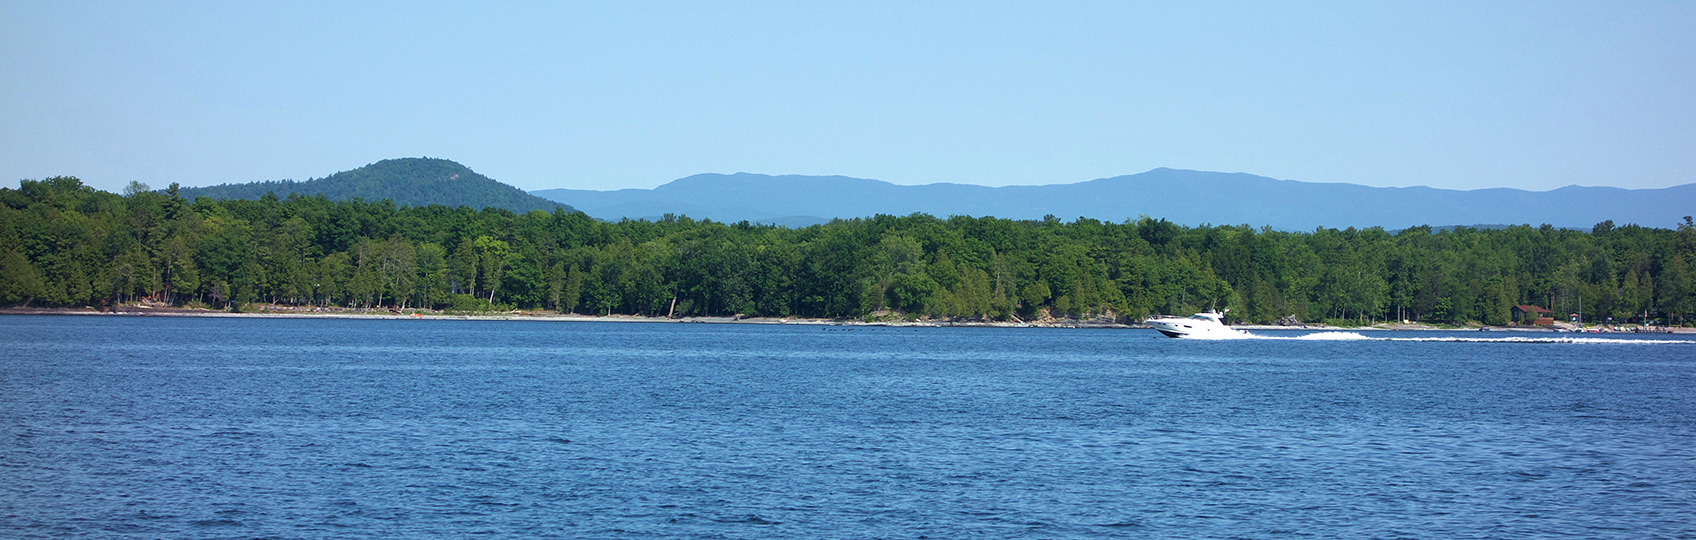 Find Vermont lakefront homes and real estate for sale